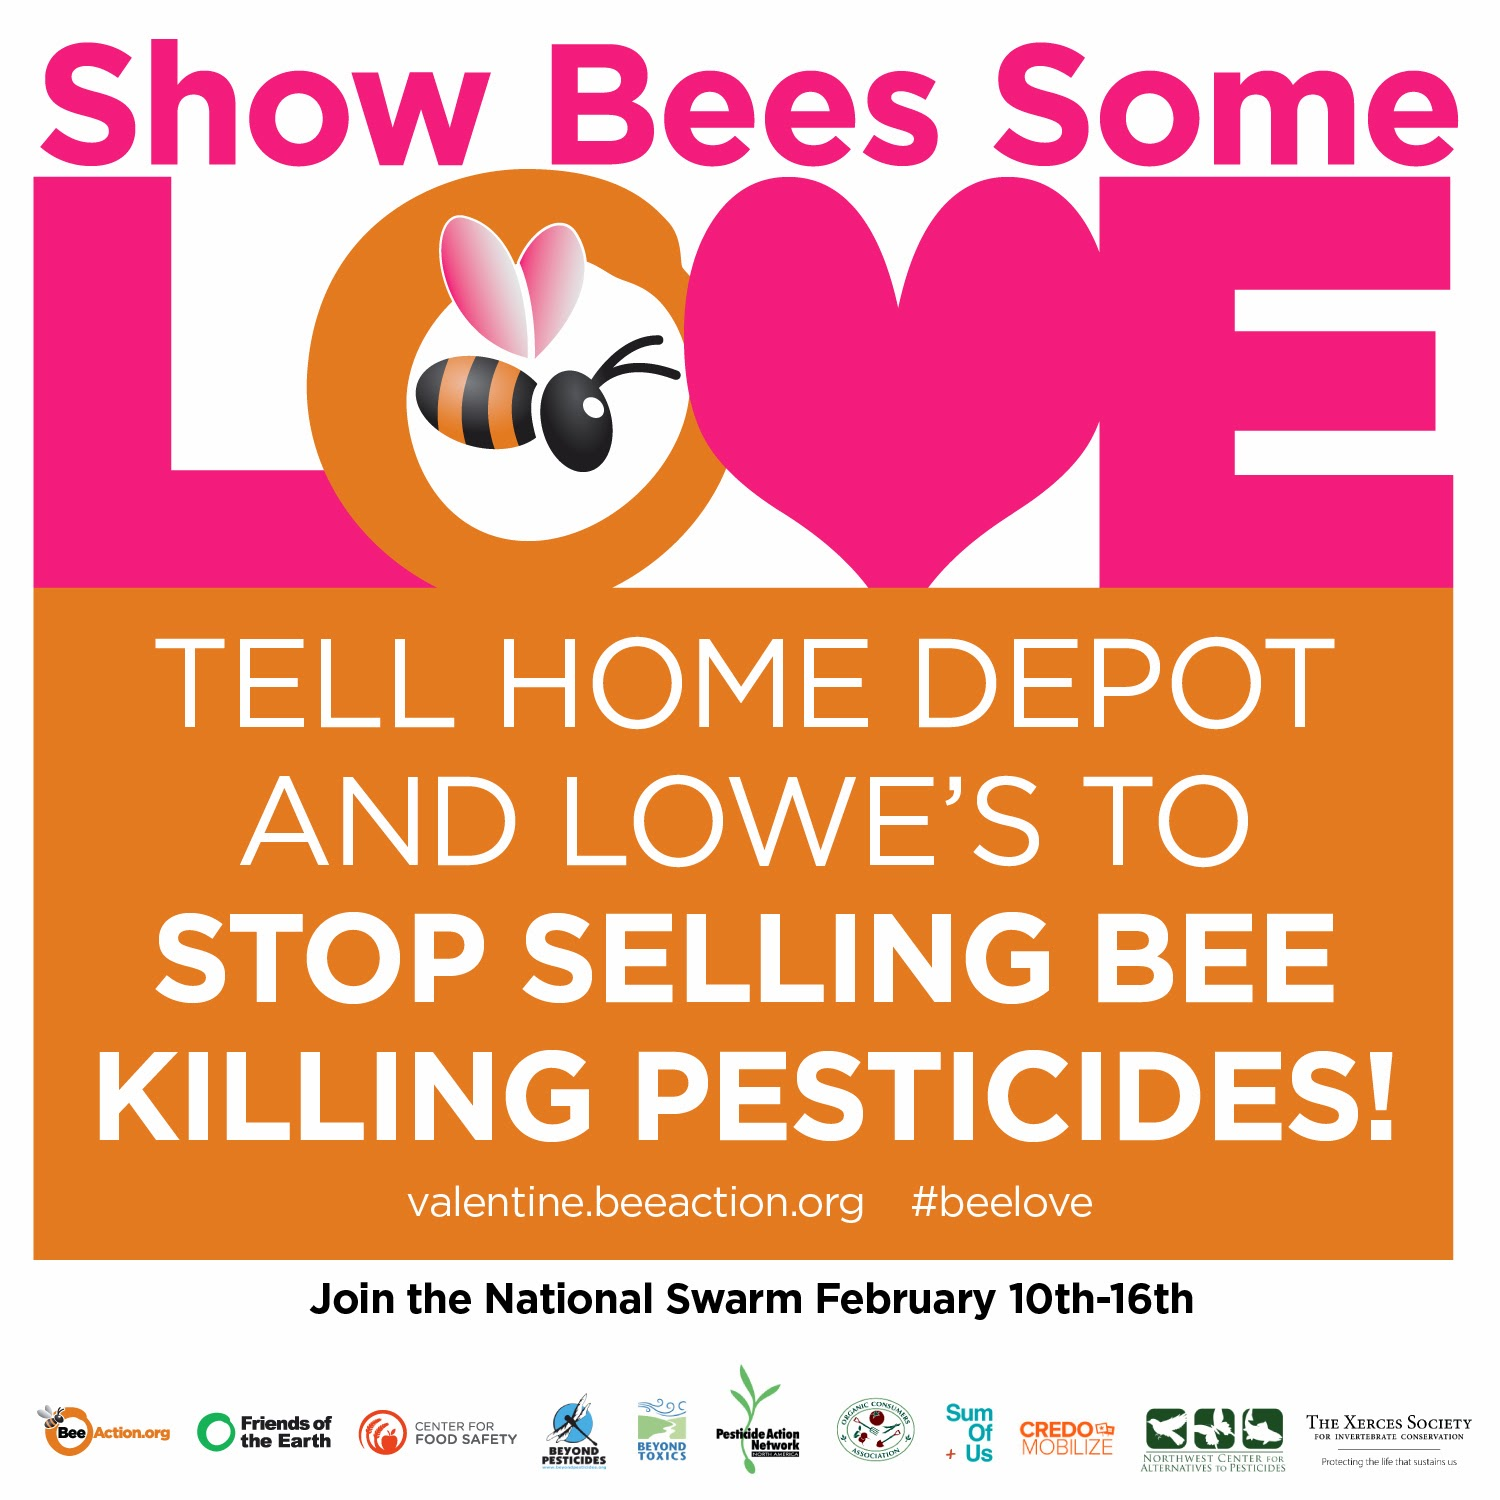 Show Bees Some Love. Tell Home Depot & Lowe's to Stop Selling Bee Killing Pesticides.